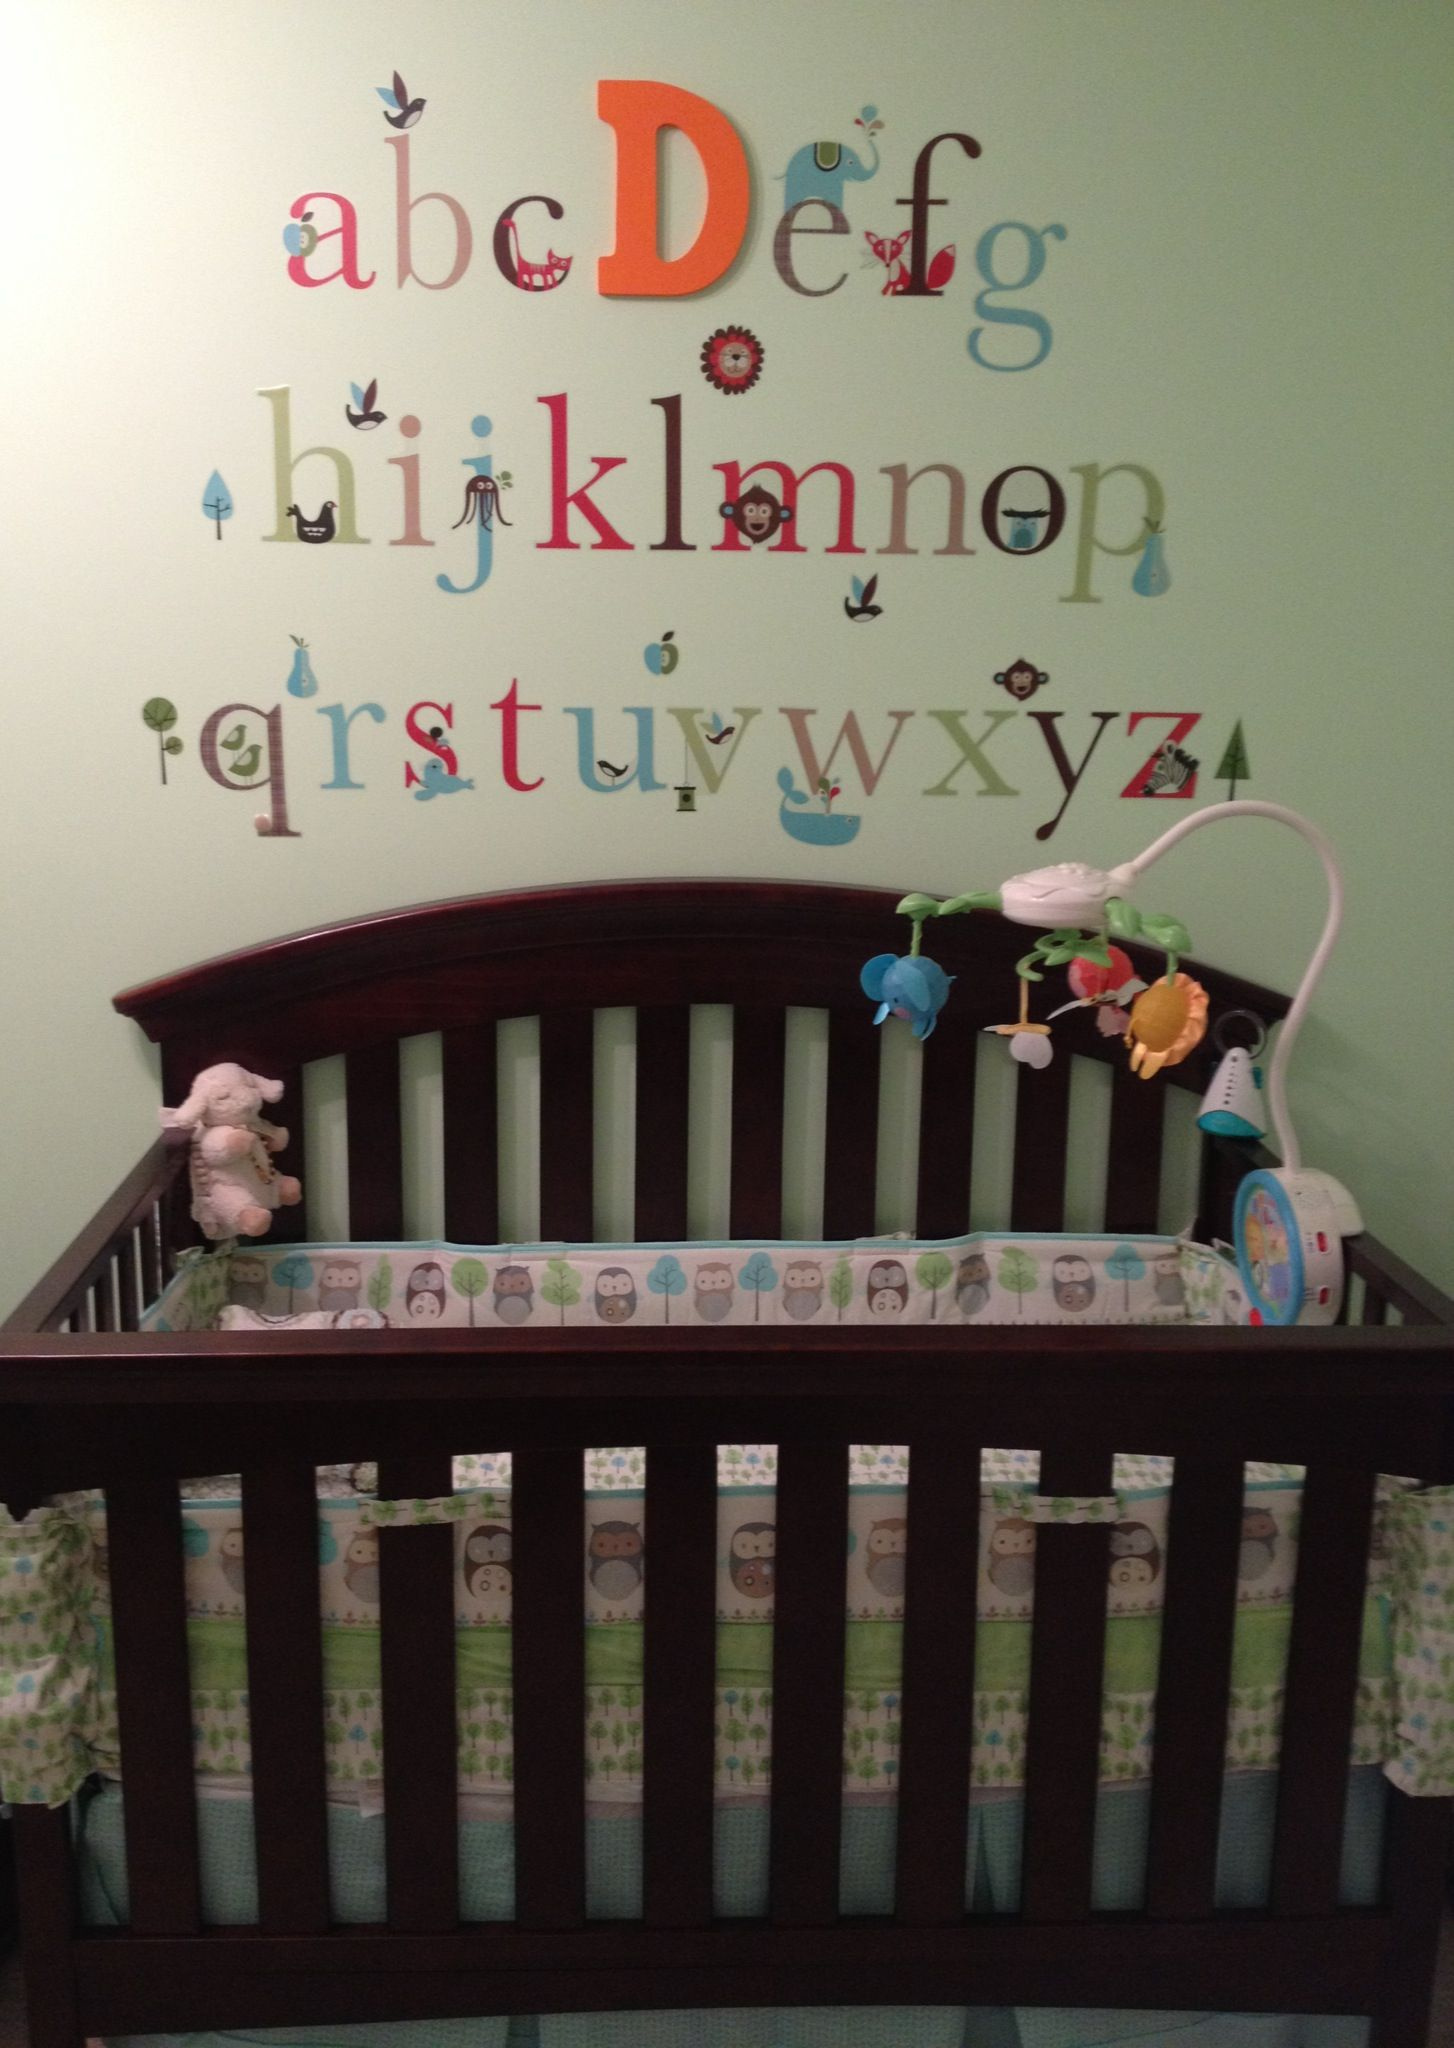 Baby Dylan S Nursery I Used L And Stick Letters Replaced The First Letter Of His Name With A Larger Wooden From Michael That Painted